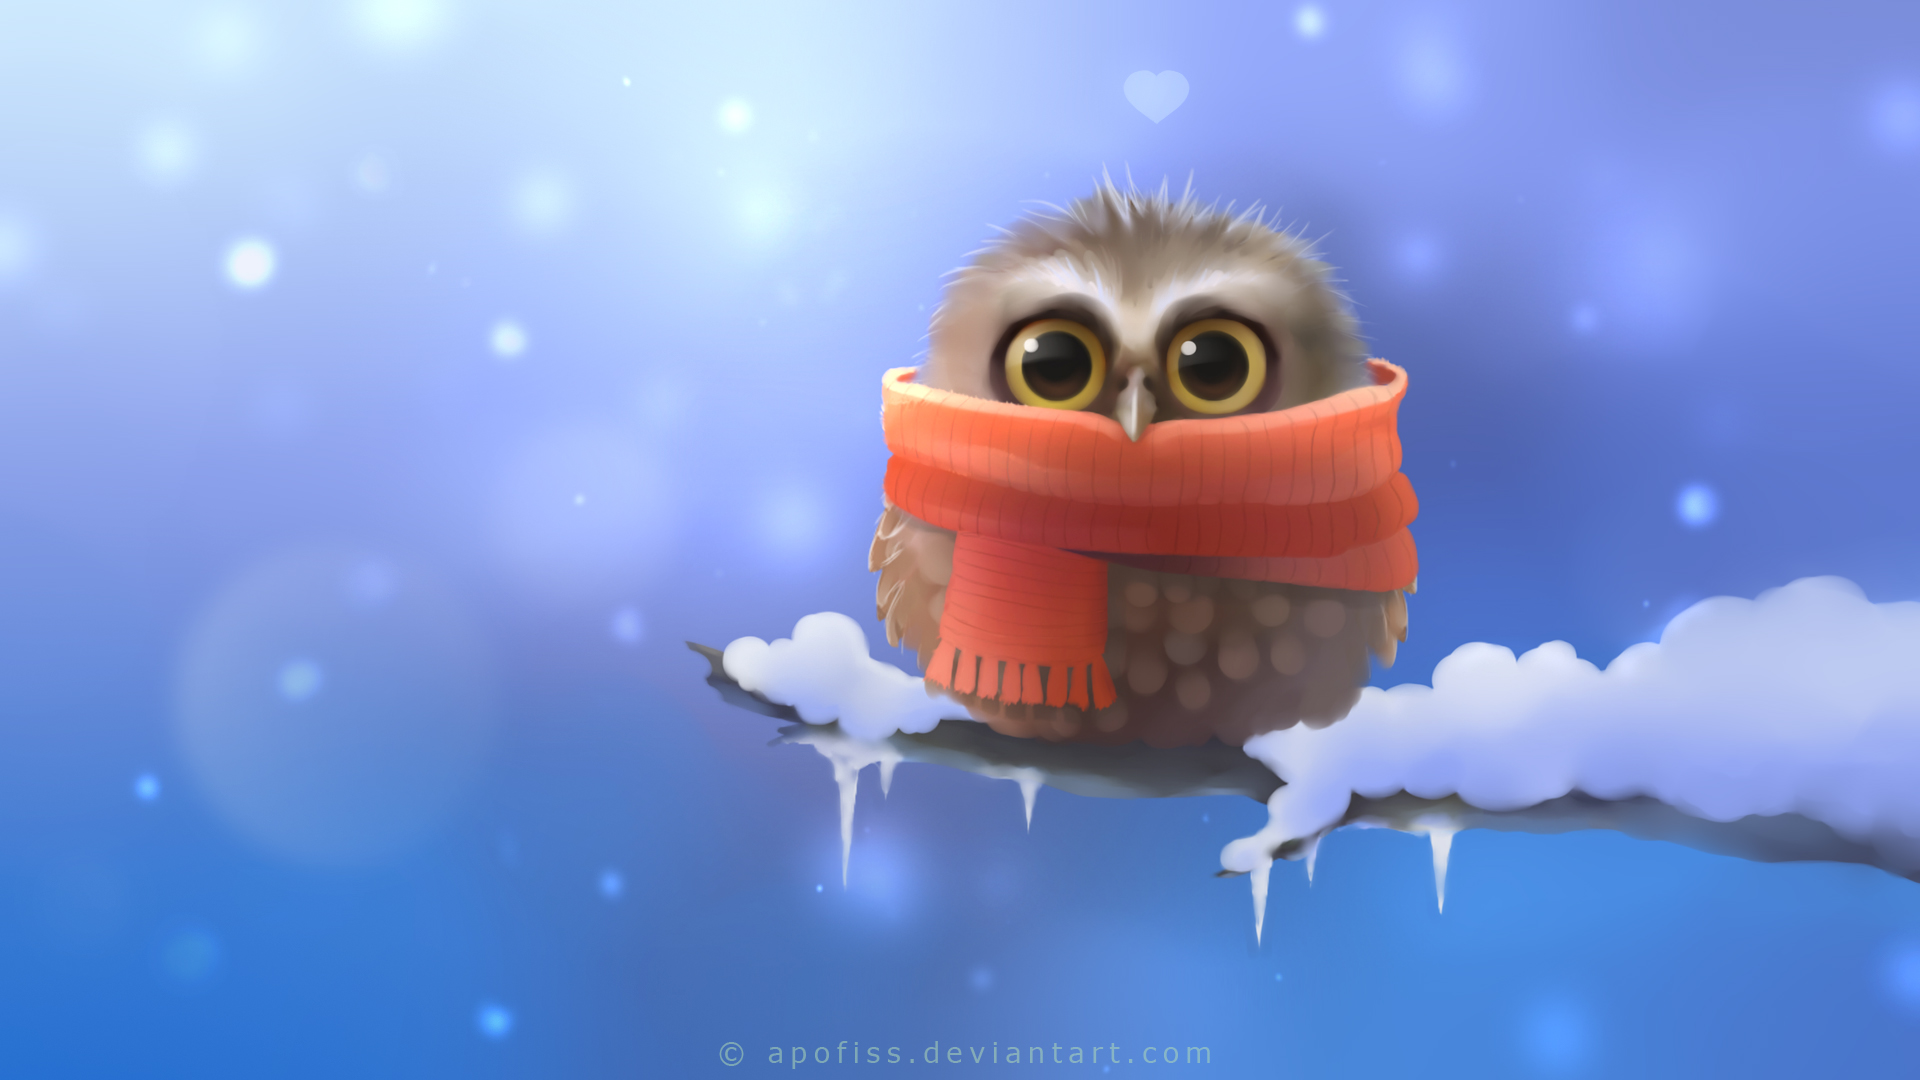 15+ Lovely and Cute Wallpapers - Style Arena